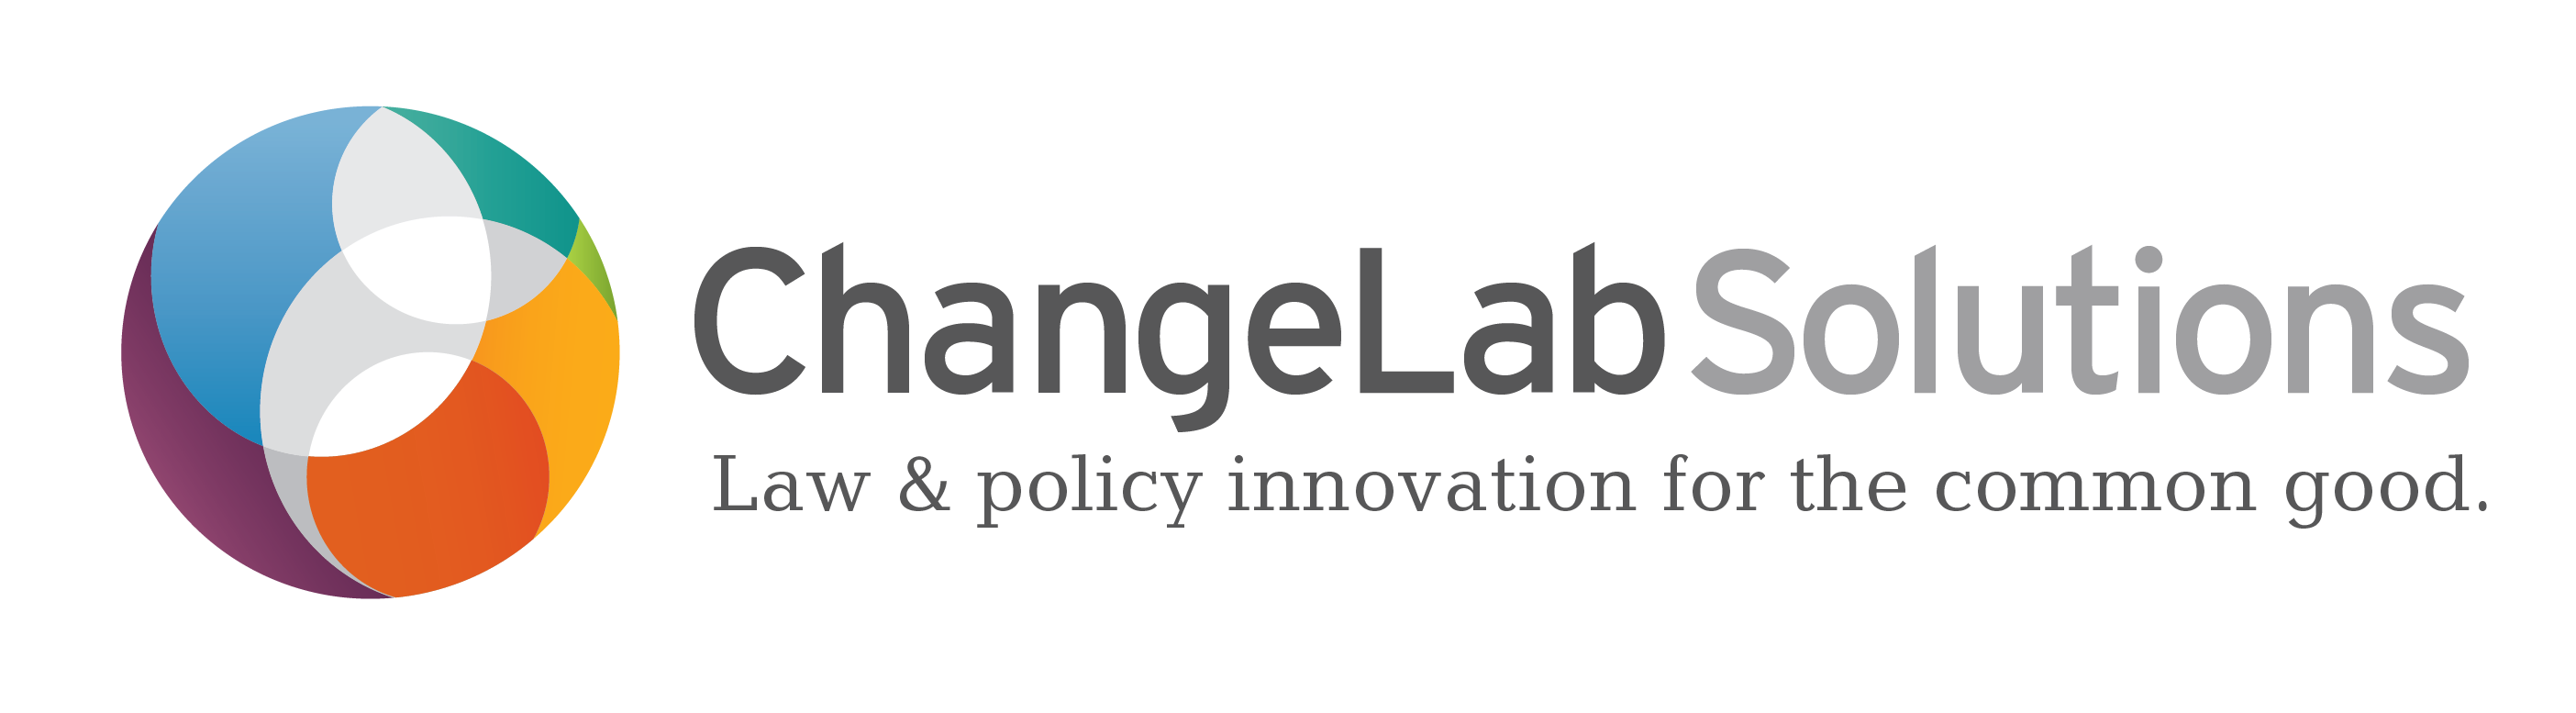 ChangeLab Solutions